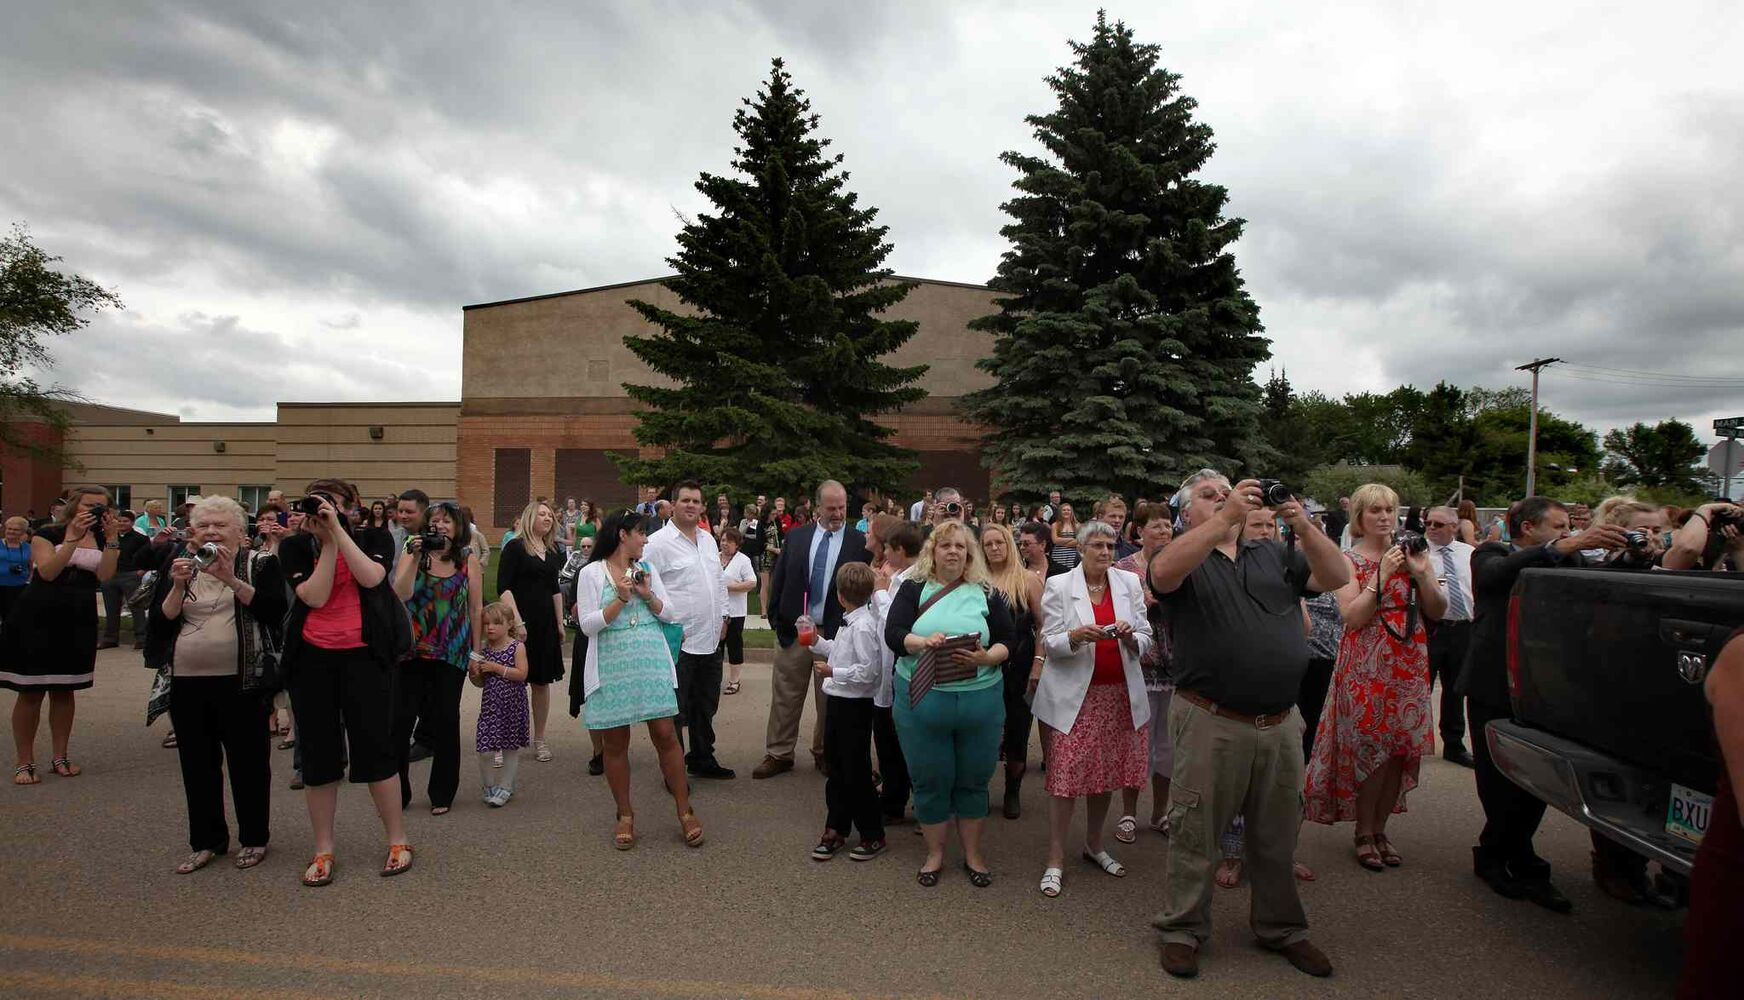 Parents gather to capture their children's high school graduation day in Carberry on Wednesday.